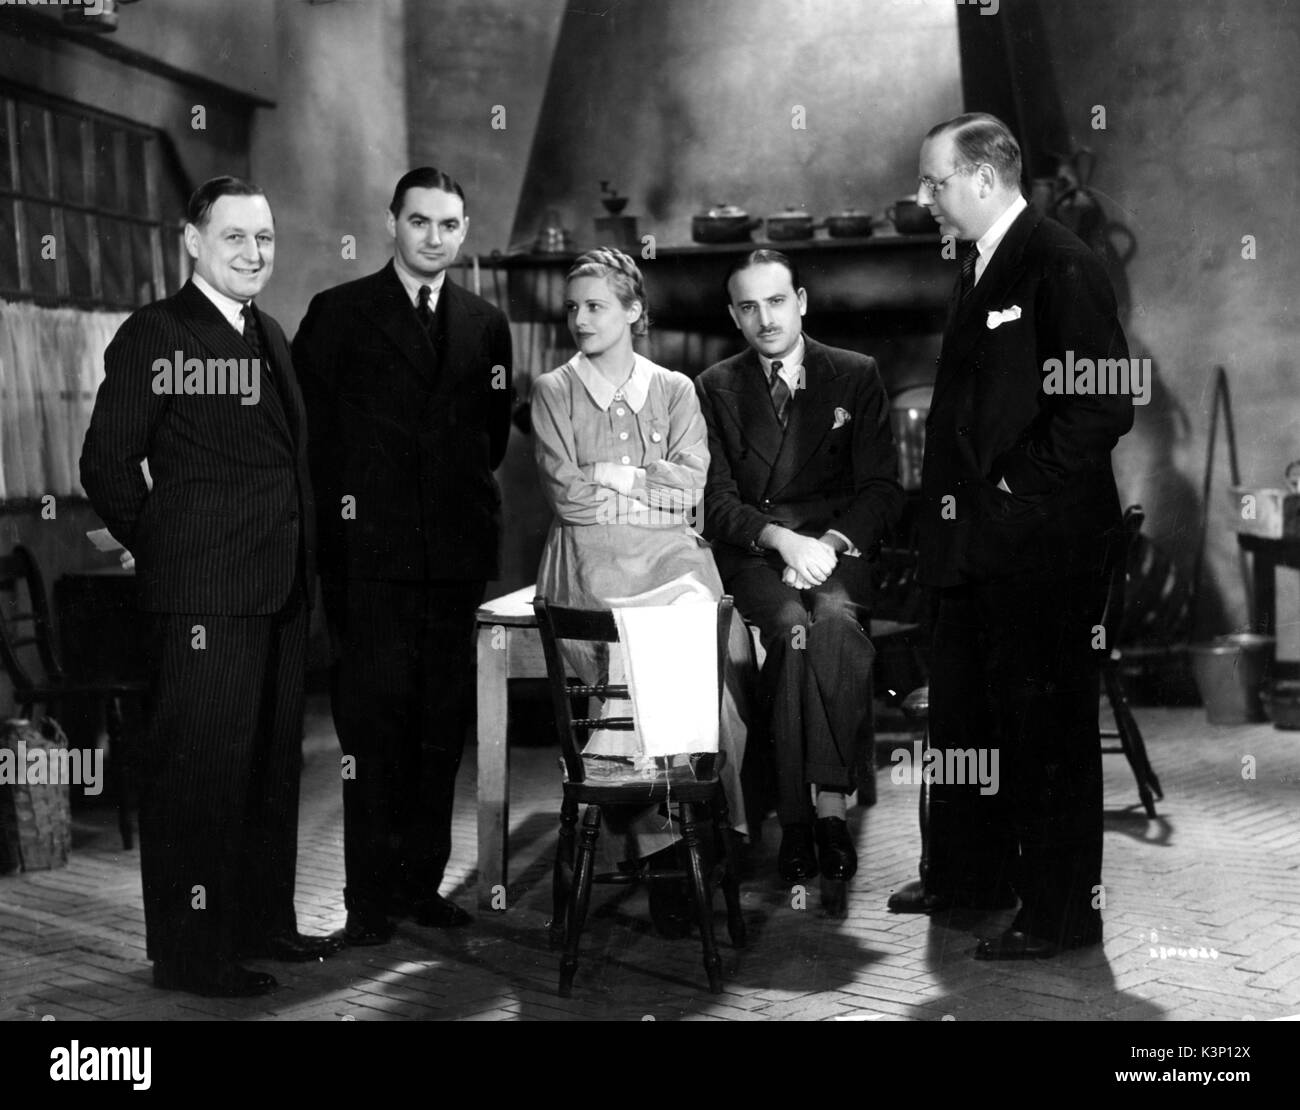 I WAS A SPY [BR 1933] [L-R] Director of General Theatre Corp (Australia) Ltd RWG MACKAY, and Managing Director of Fox Fim Co UK WJ HUTCHINSON visiting the set with star MADELEINE CARROLL, Producer & British Gaumont Chief MICHAEL BALCON, Director VICTOR SAVIL     Date: 1933 - Stock Image